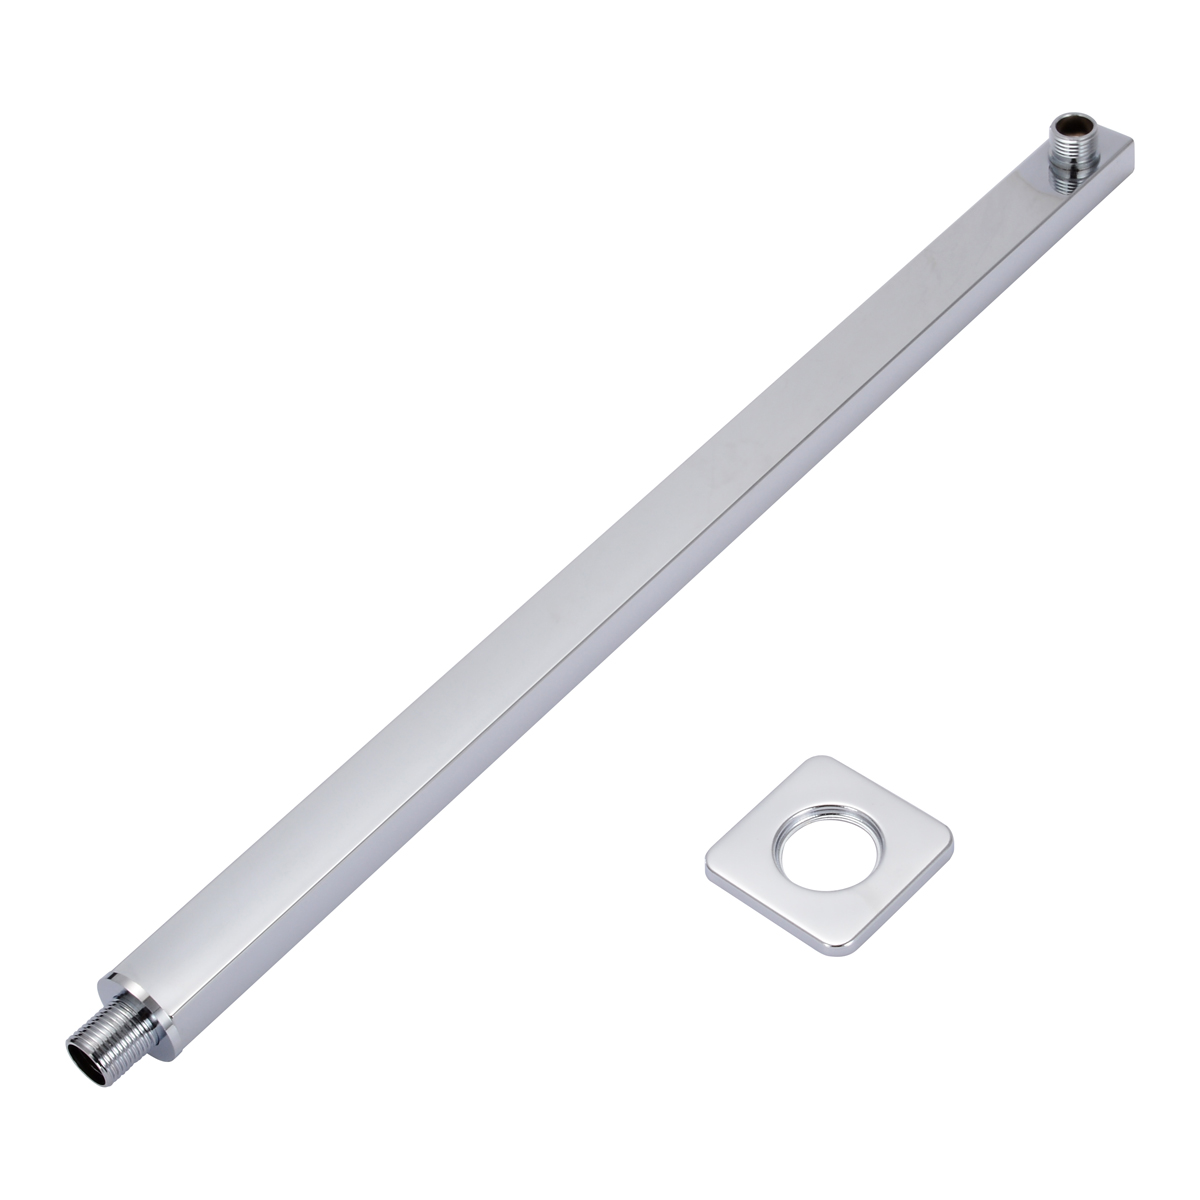 60cm 24 Inch Wall Mounted Chrome Shower Arm Silver Square Shower Extension Arms For Rain Shower Head Bathroom Shower Accessories